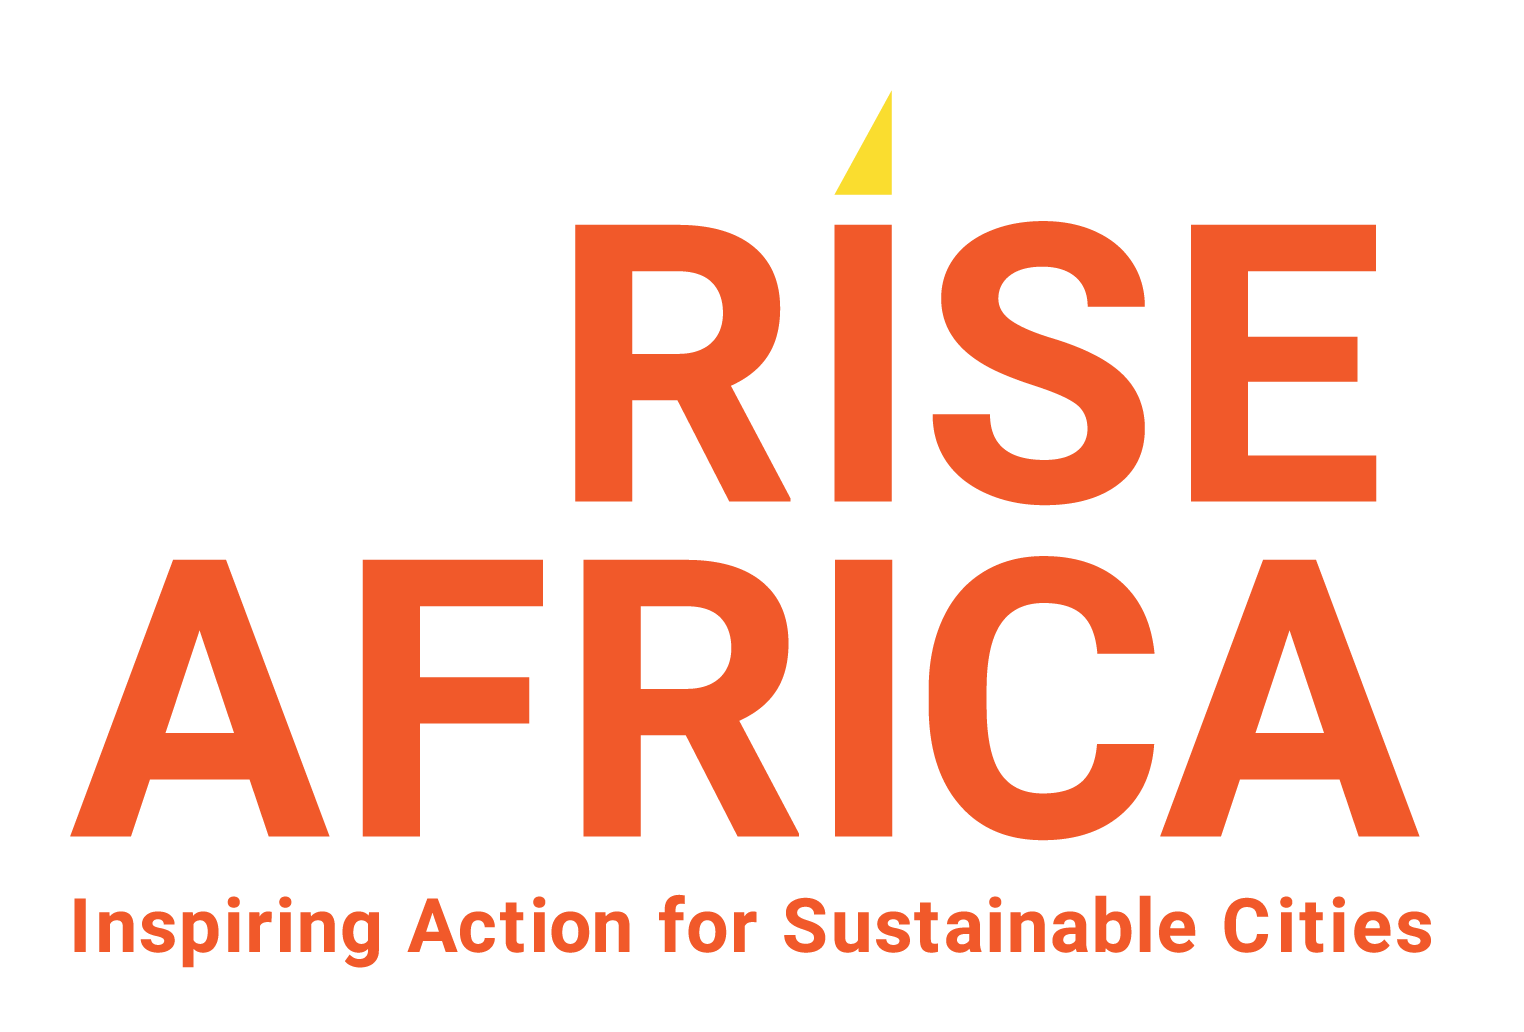 RISE Africa Logo